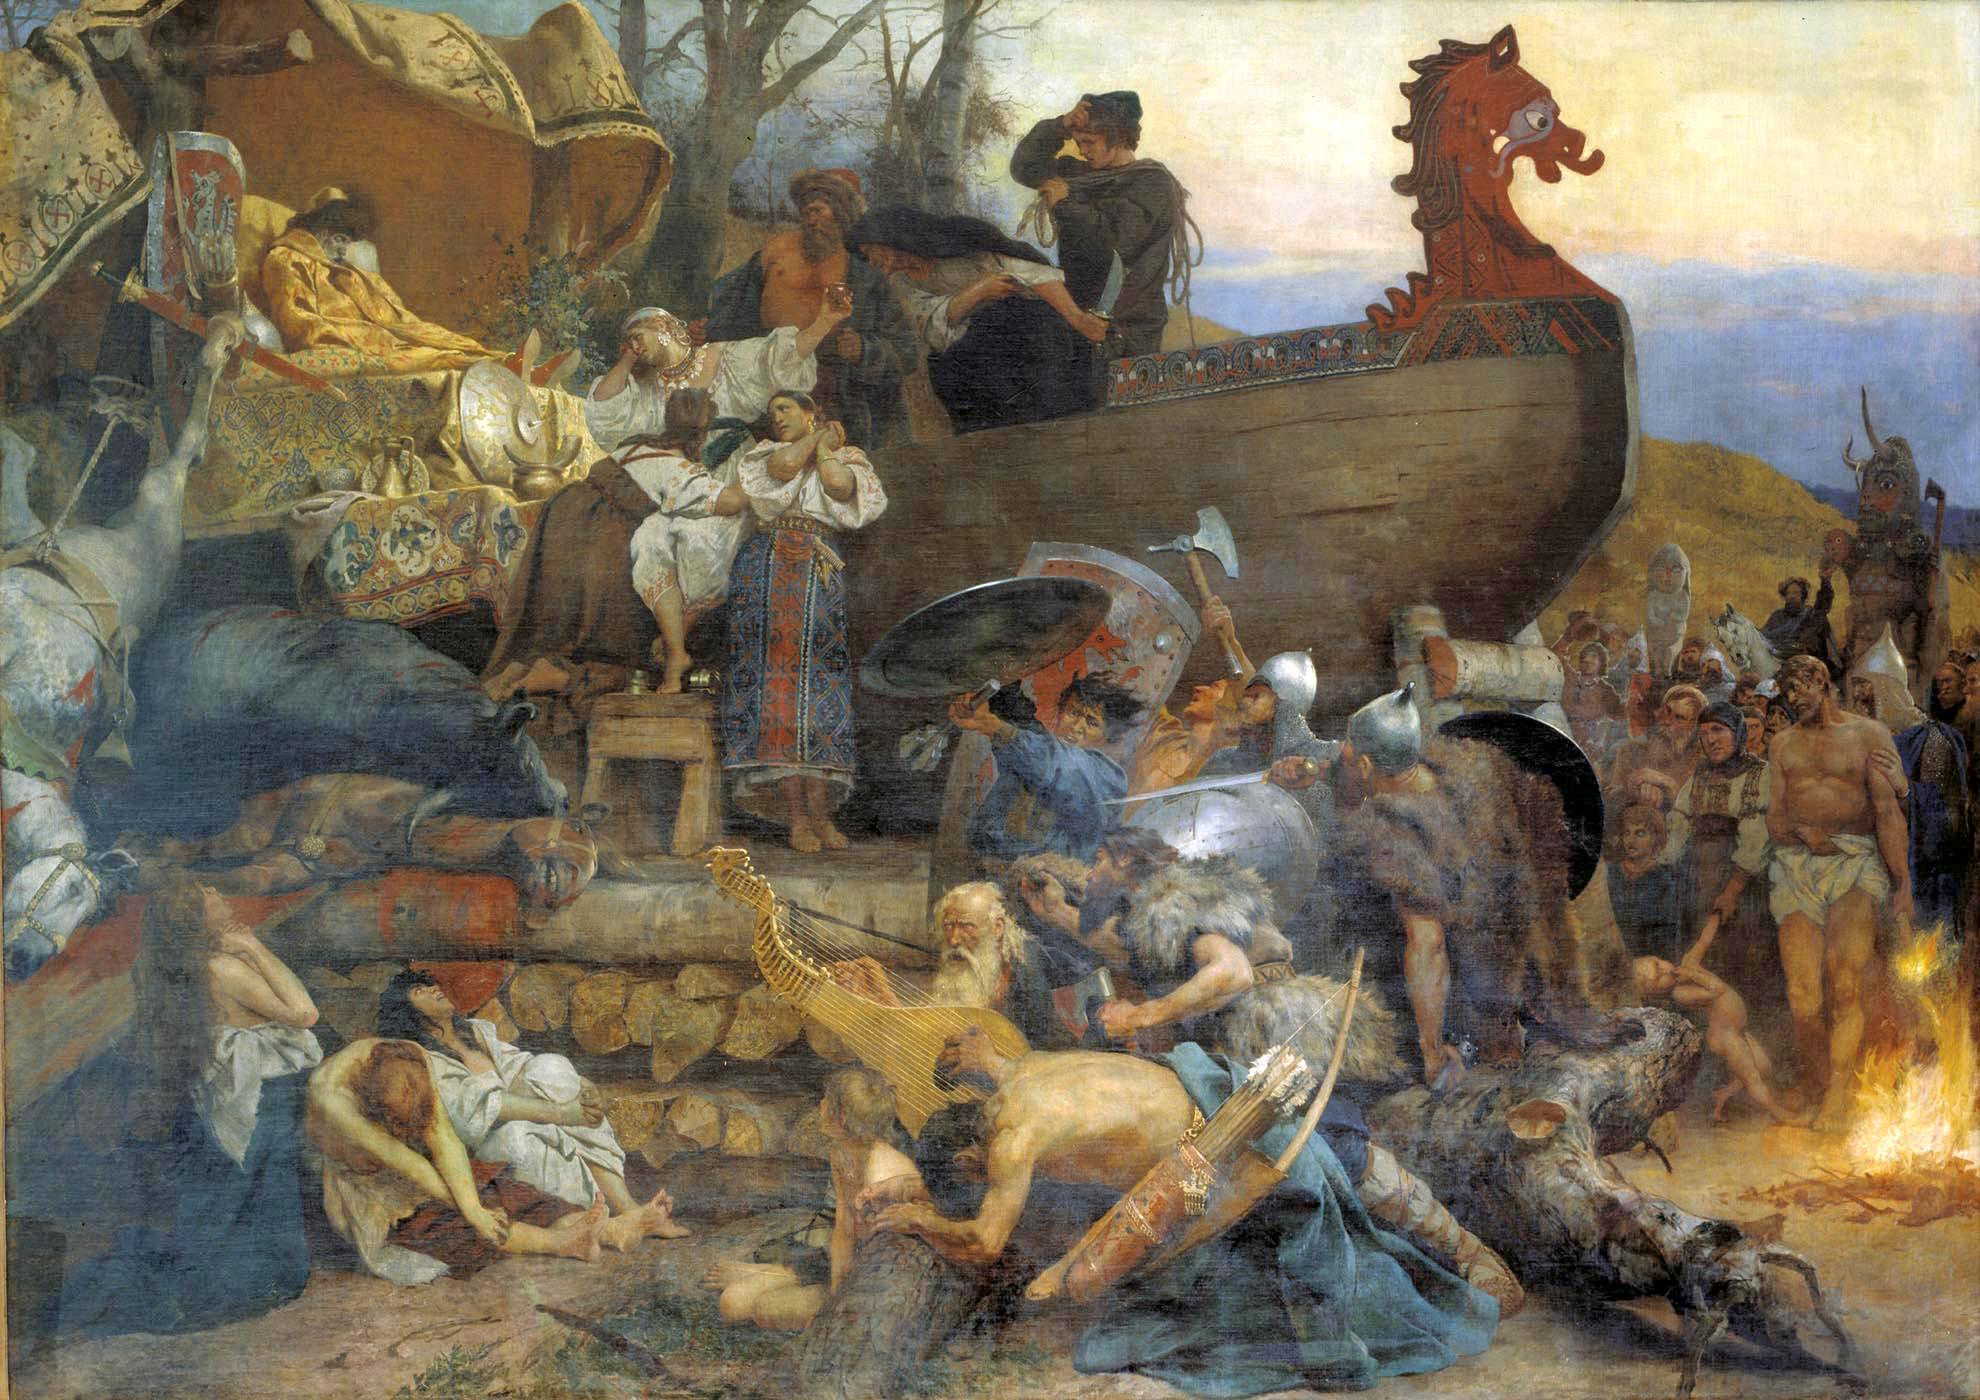 Ship burial of a Rus chieftain. This serene was described by the Arab traveler Ahmad ibn Fadlan who visited Kievan Rus in the 10th century, painted by Henryk Siemiradzki (1883). WikimediaCommons